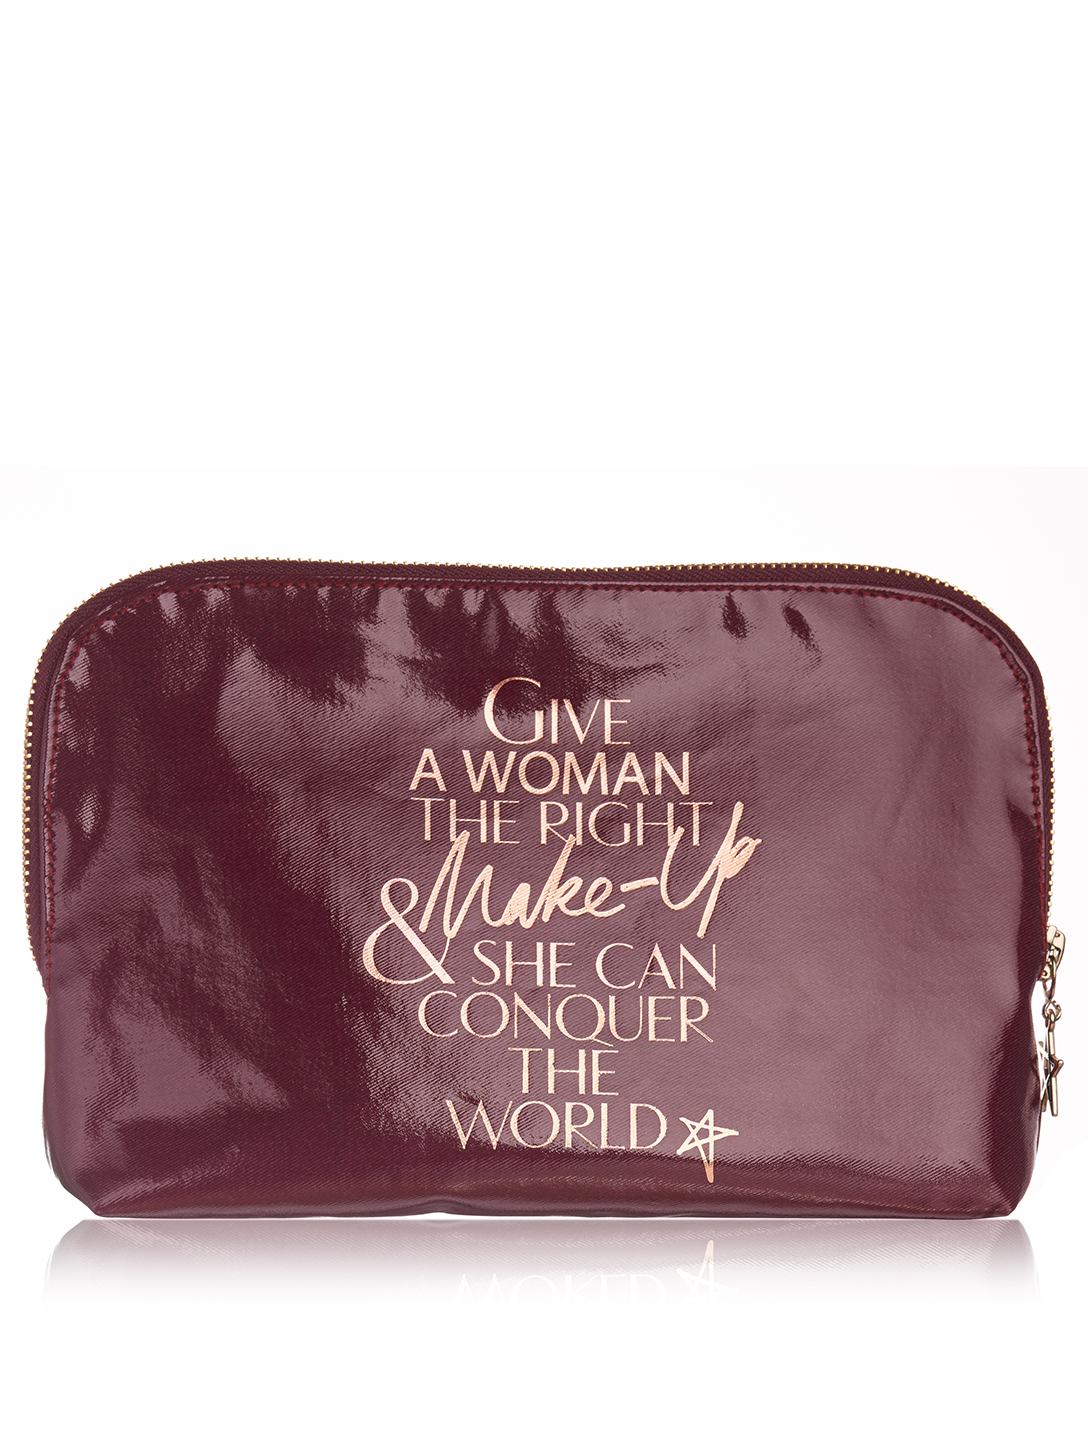 CHARLOTTE TILBURY 2nd Edition Makeup Bag Beauty